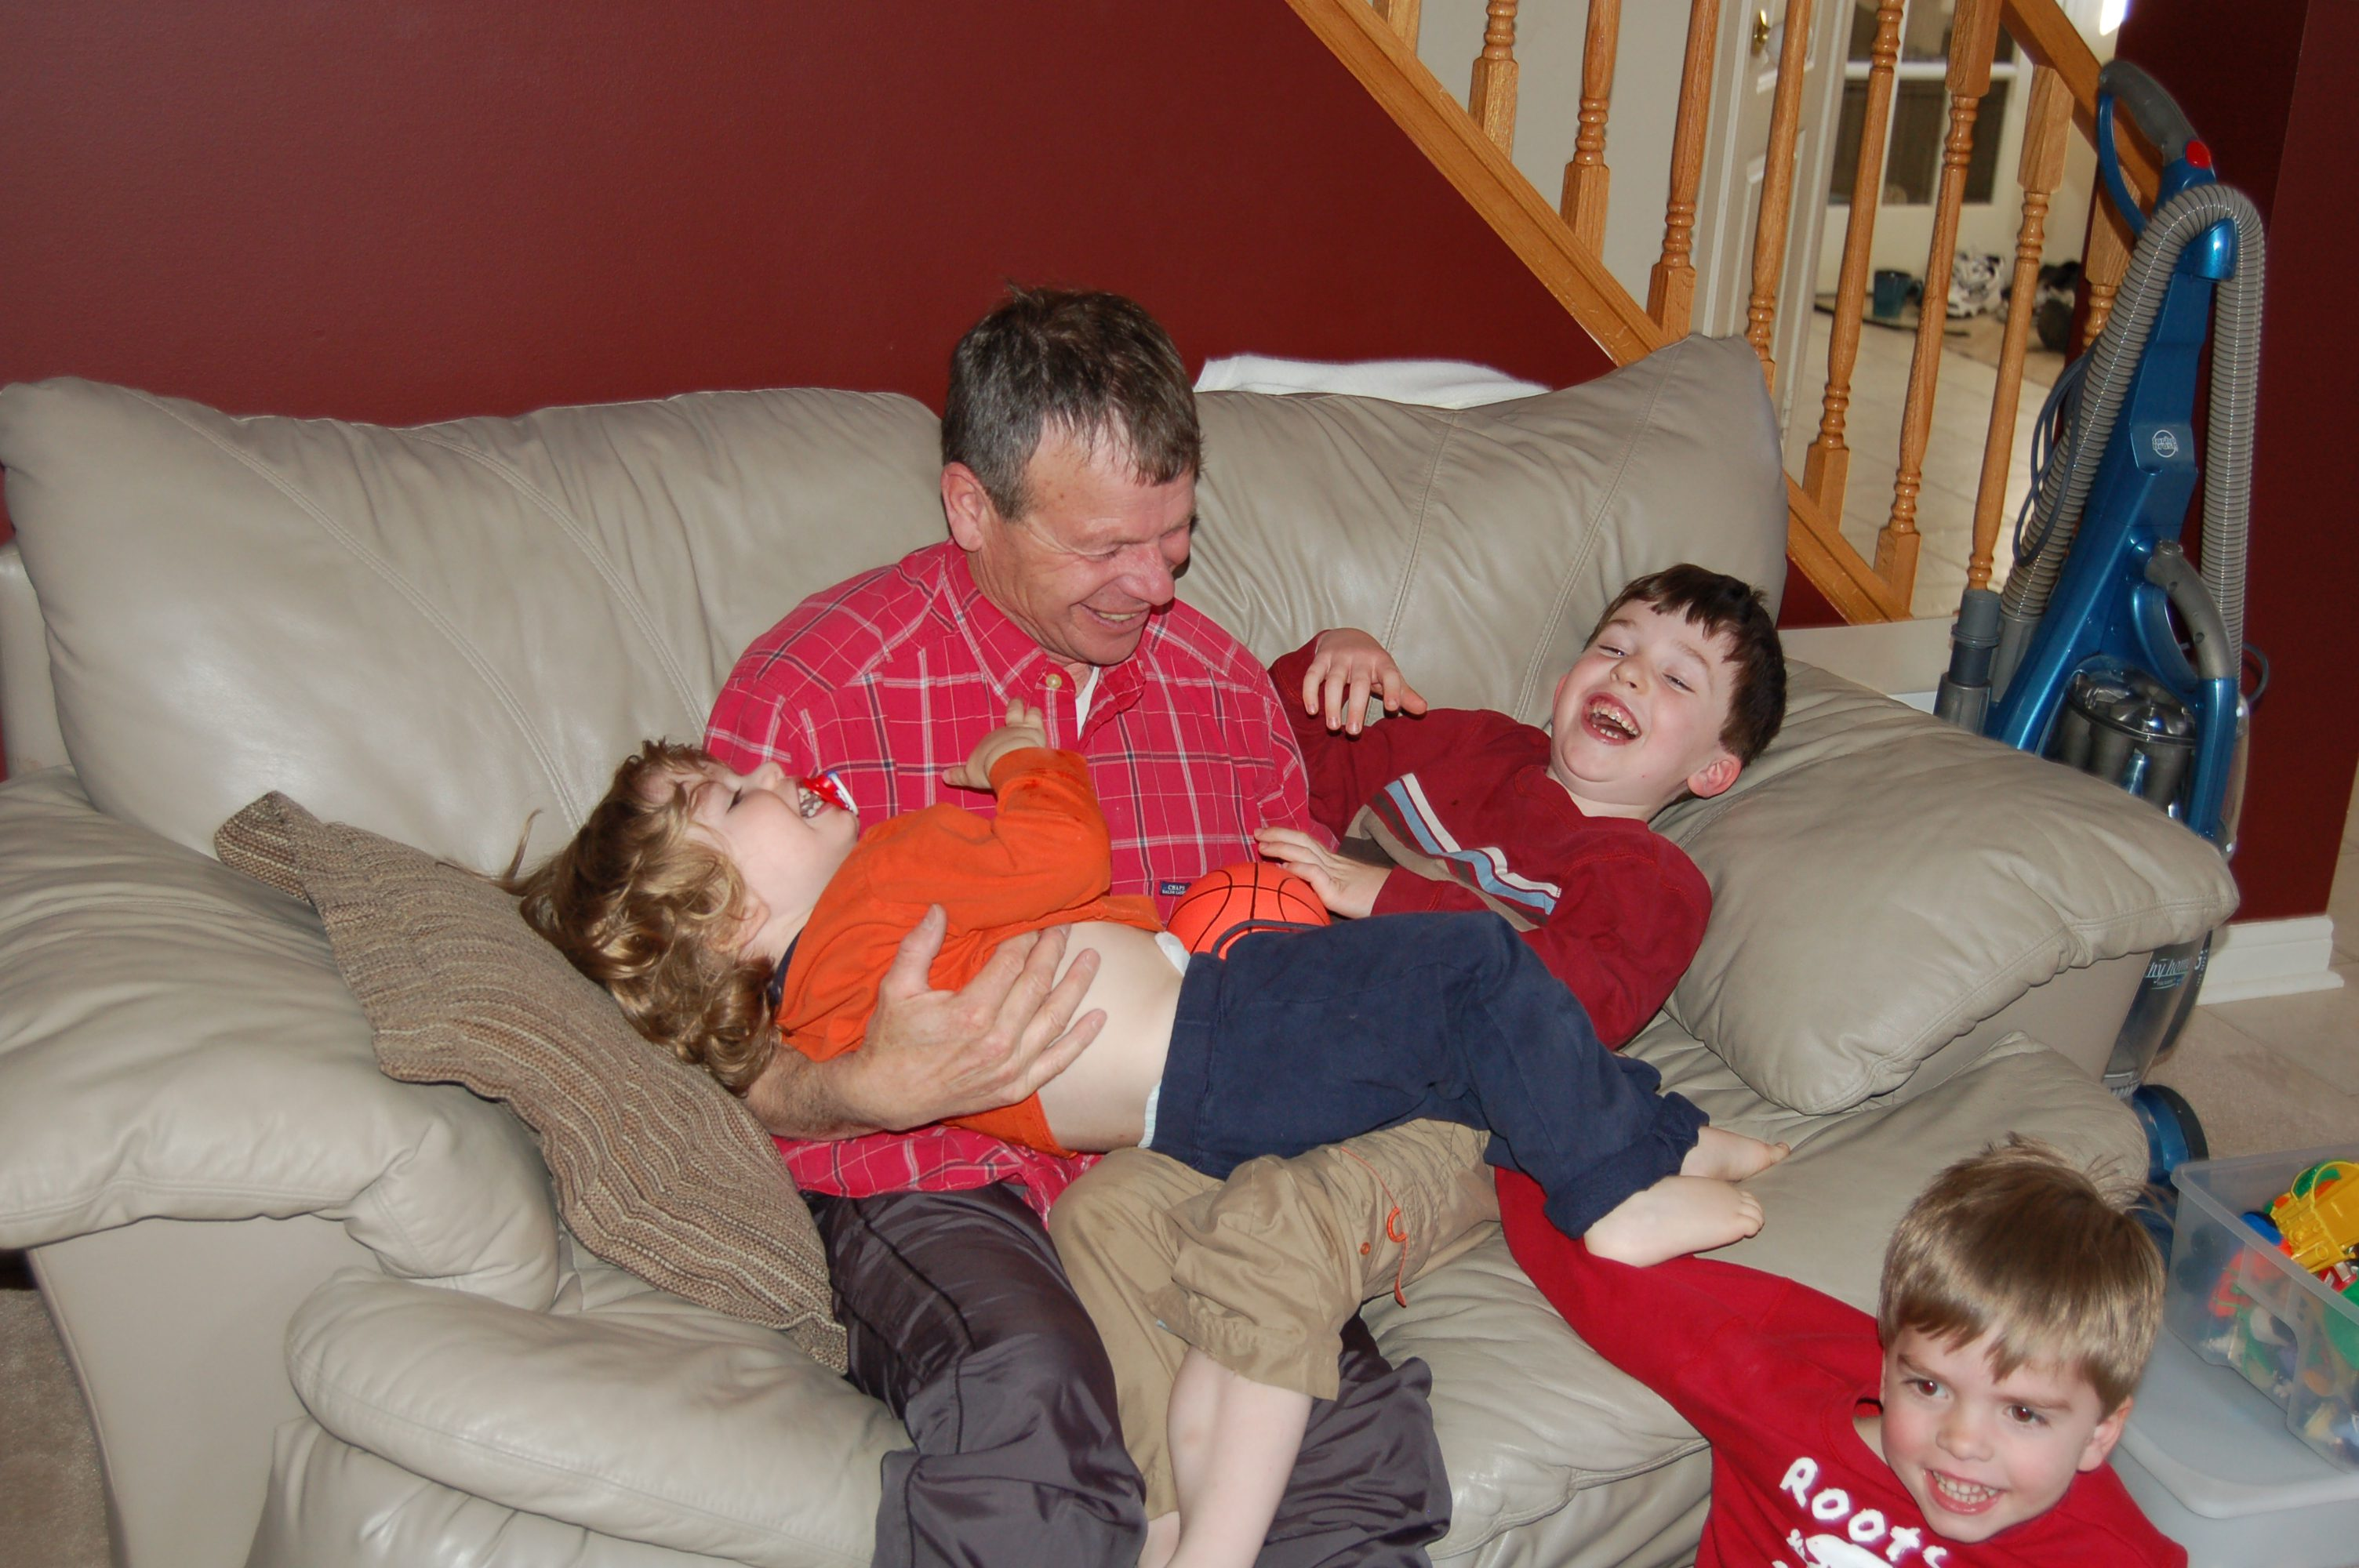 Grandfather wrestling his three grandsons and laughing